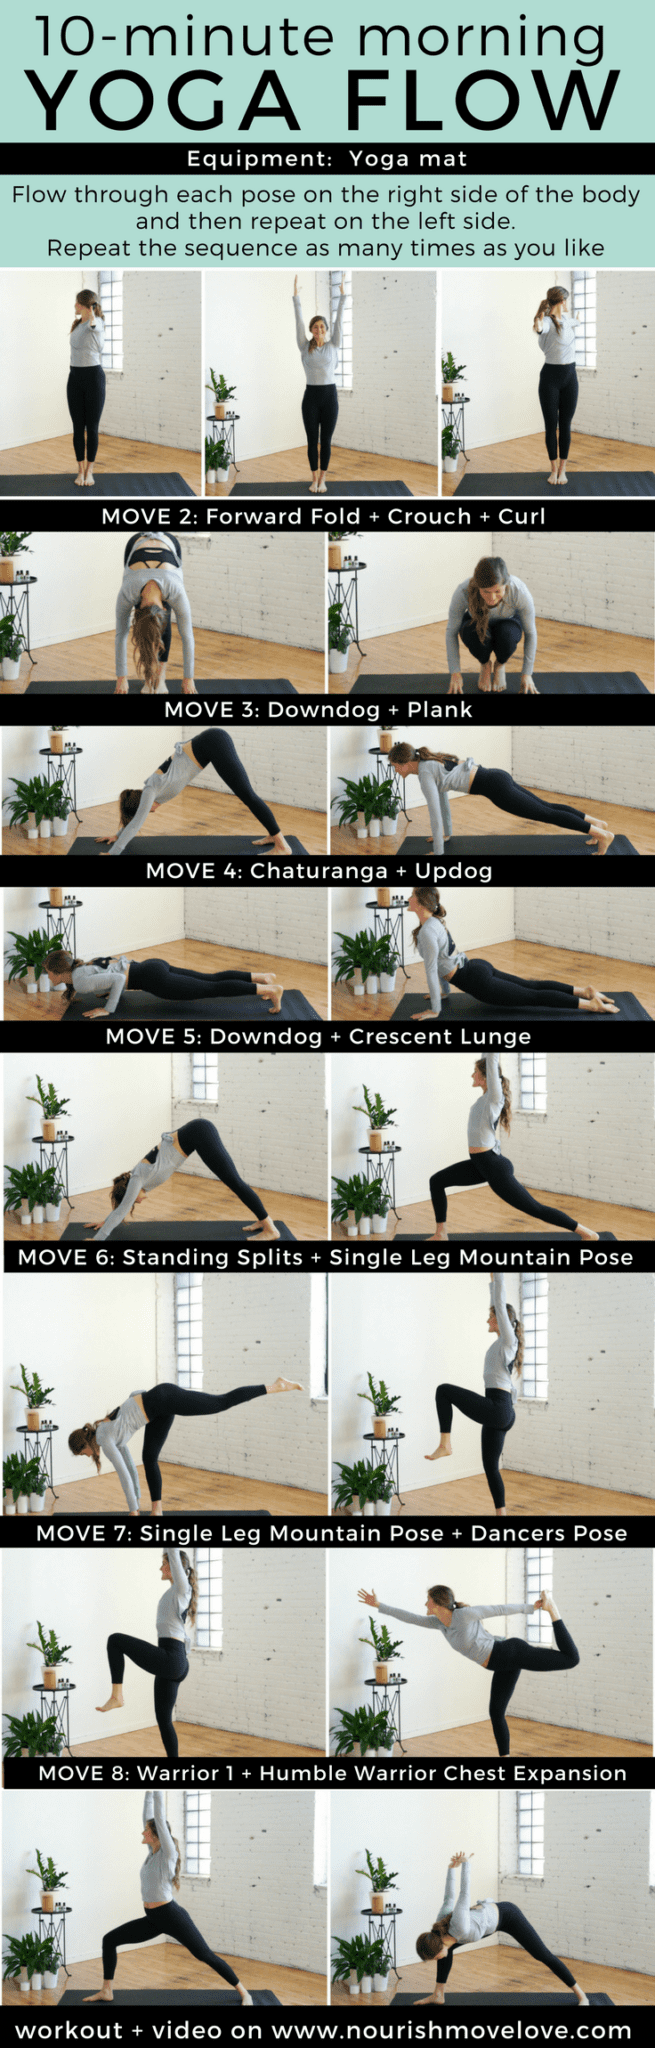 10-Minute Morning Yoga Flow for Beginners | www.nourishmovelove.com